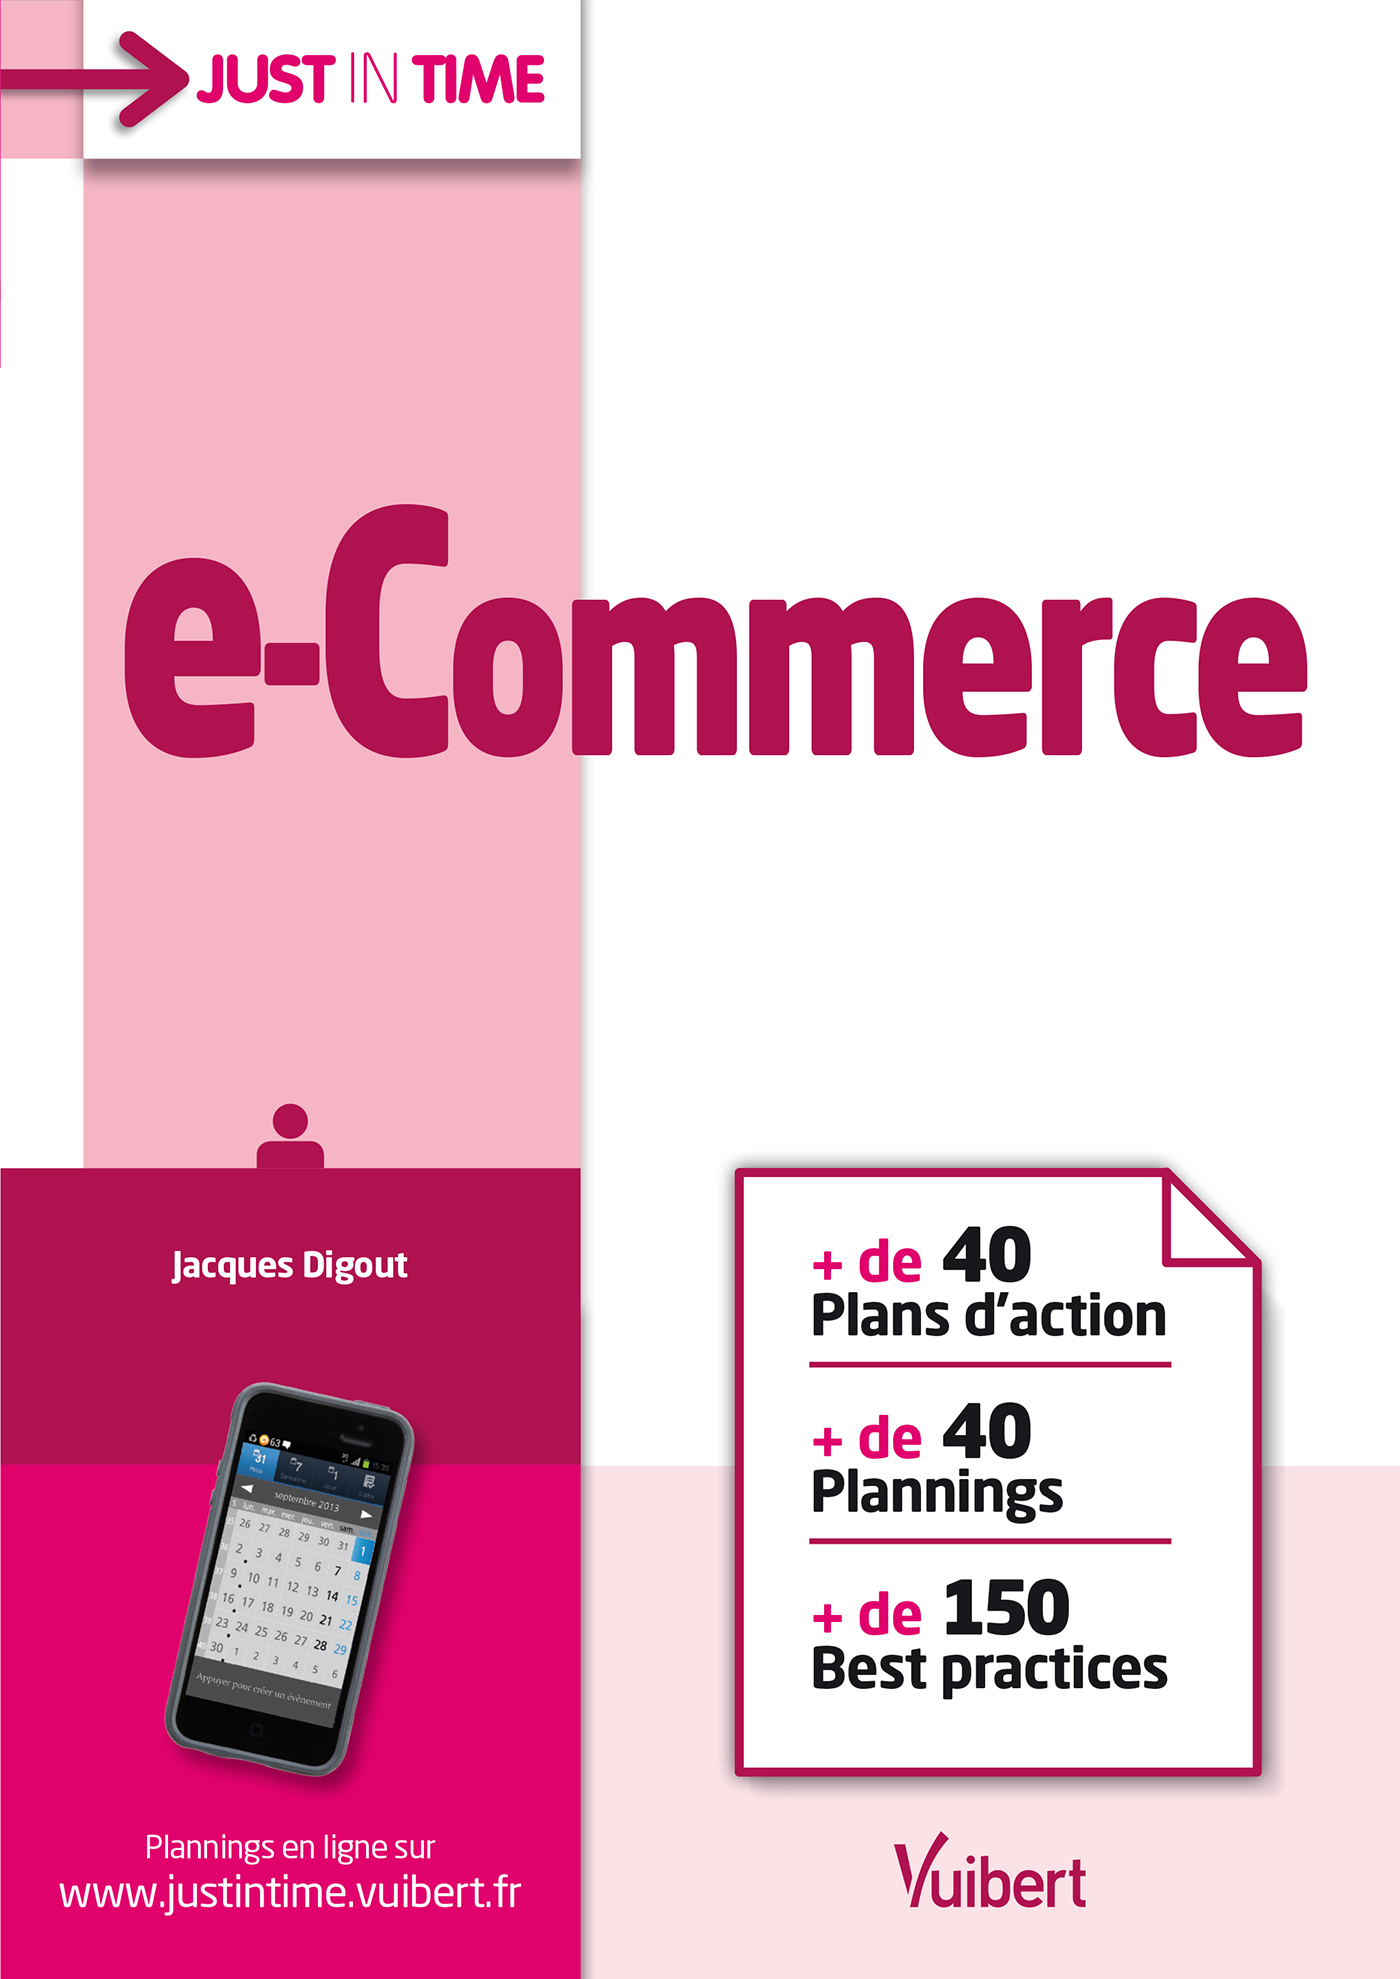 JUST IN TIME E COMMERCE